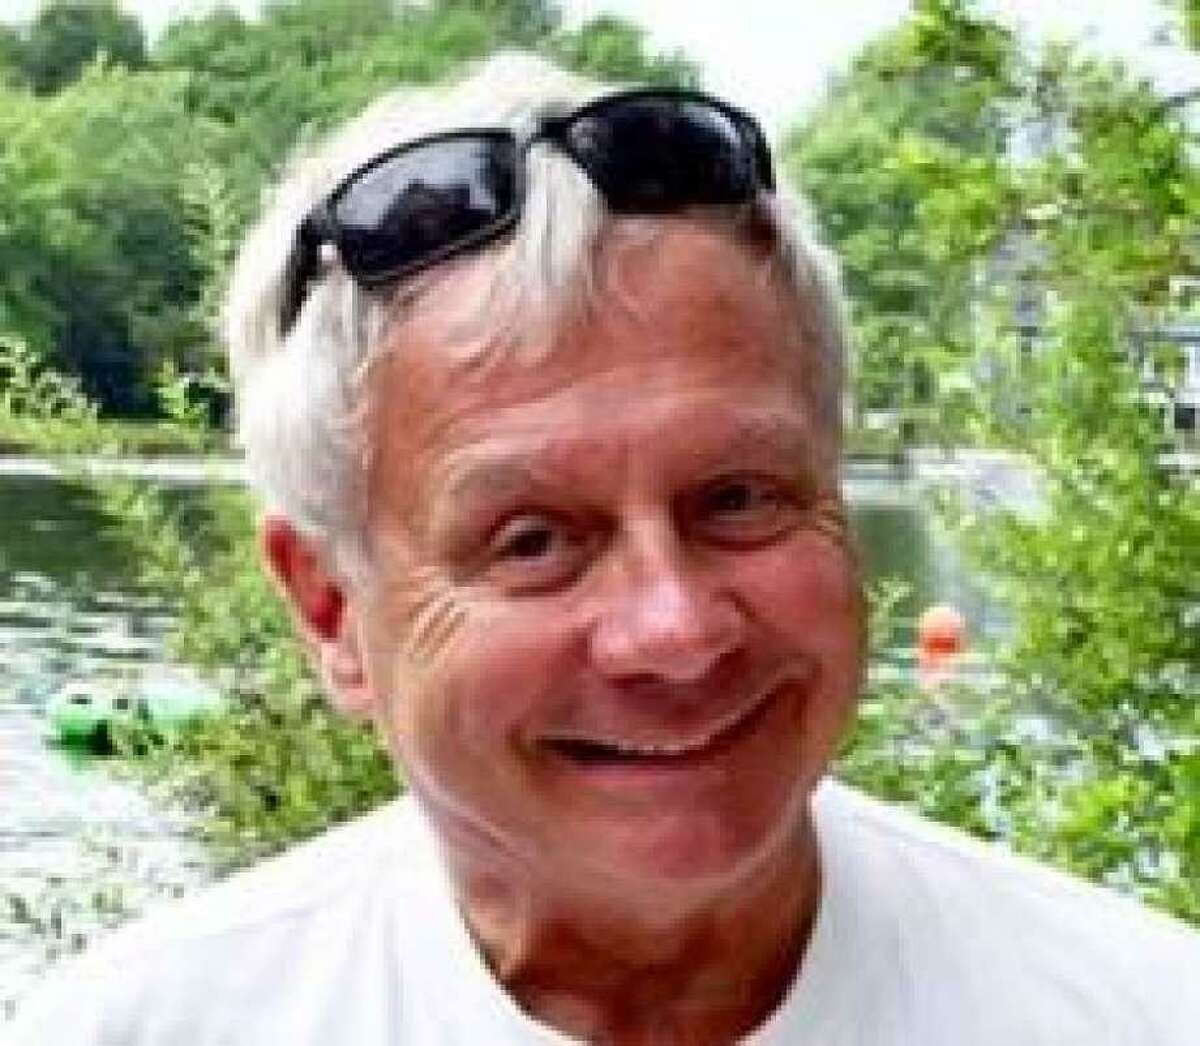 The Rev. William Costello, 71, was a retired priest from the Fall River Diocese in Massachusetts.